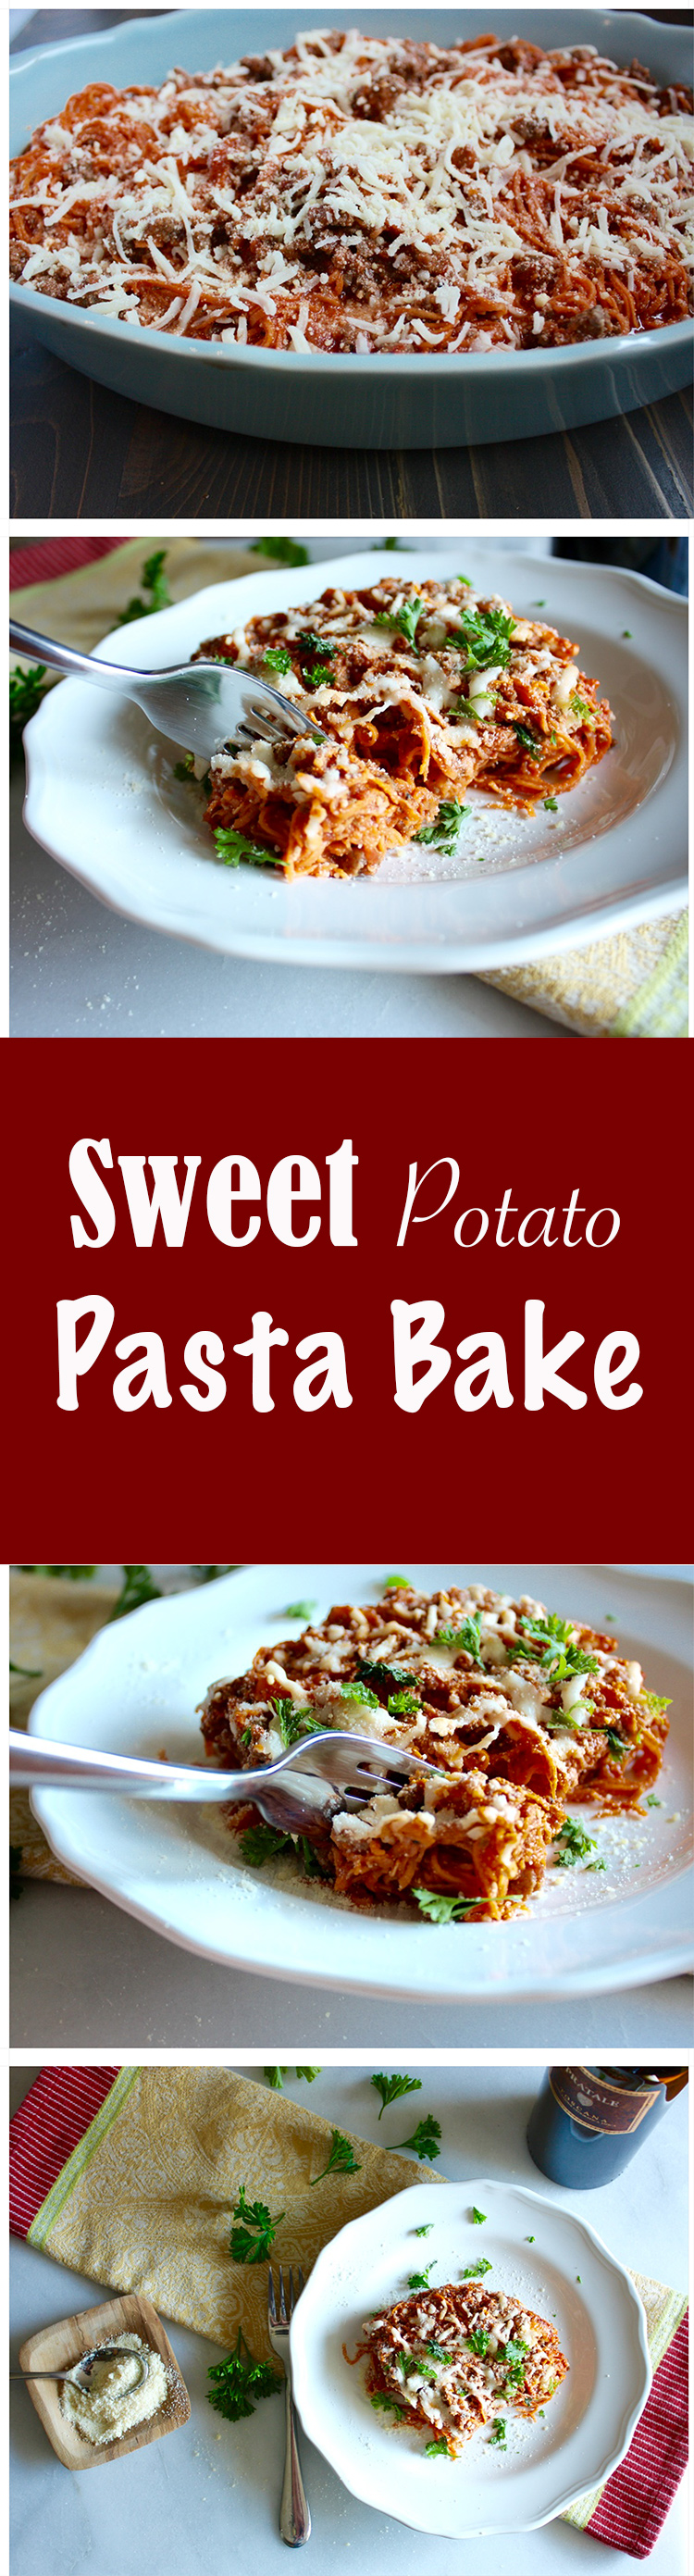 Sweet Potato Pasta Bake - Miss Allie's Kitchen